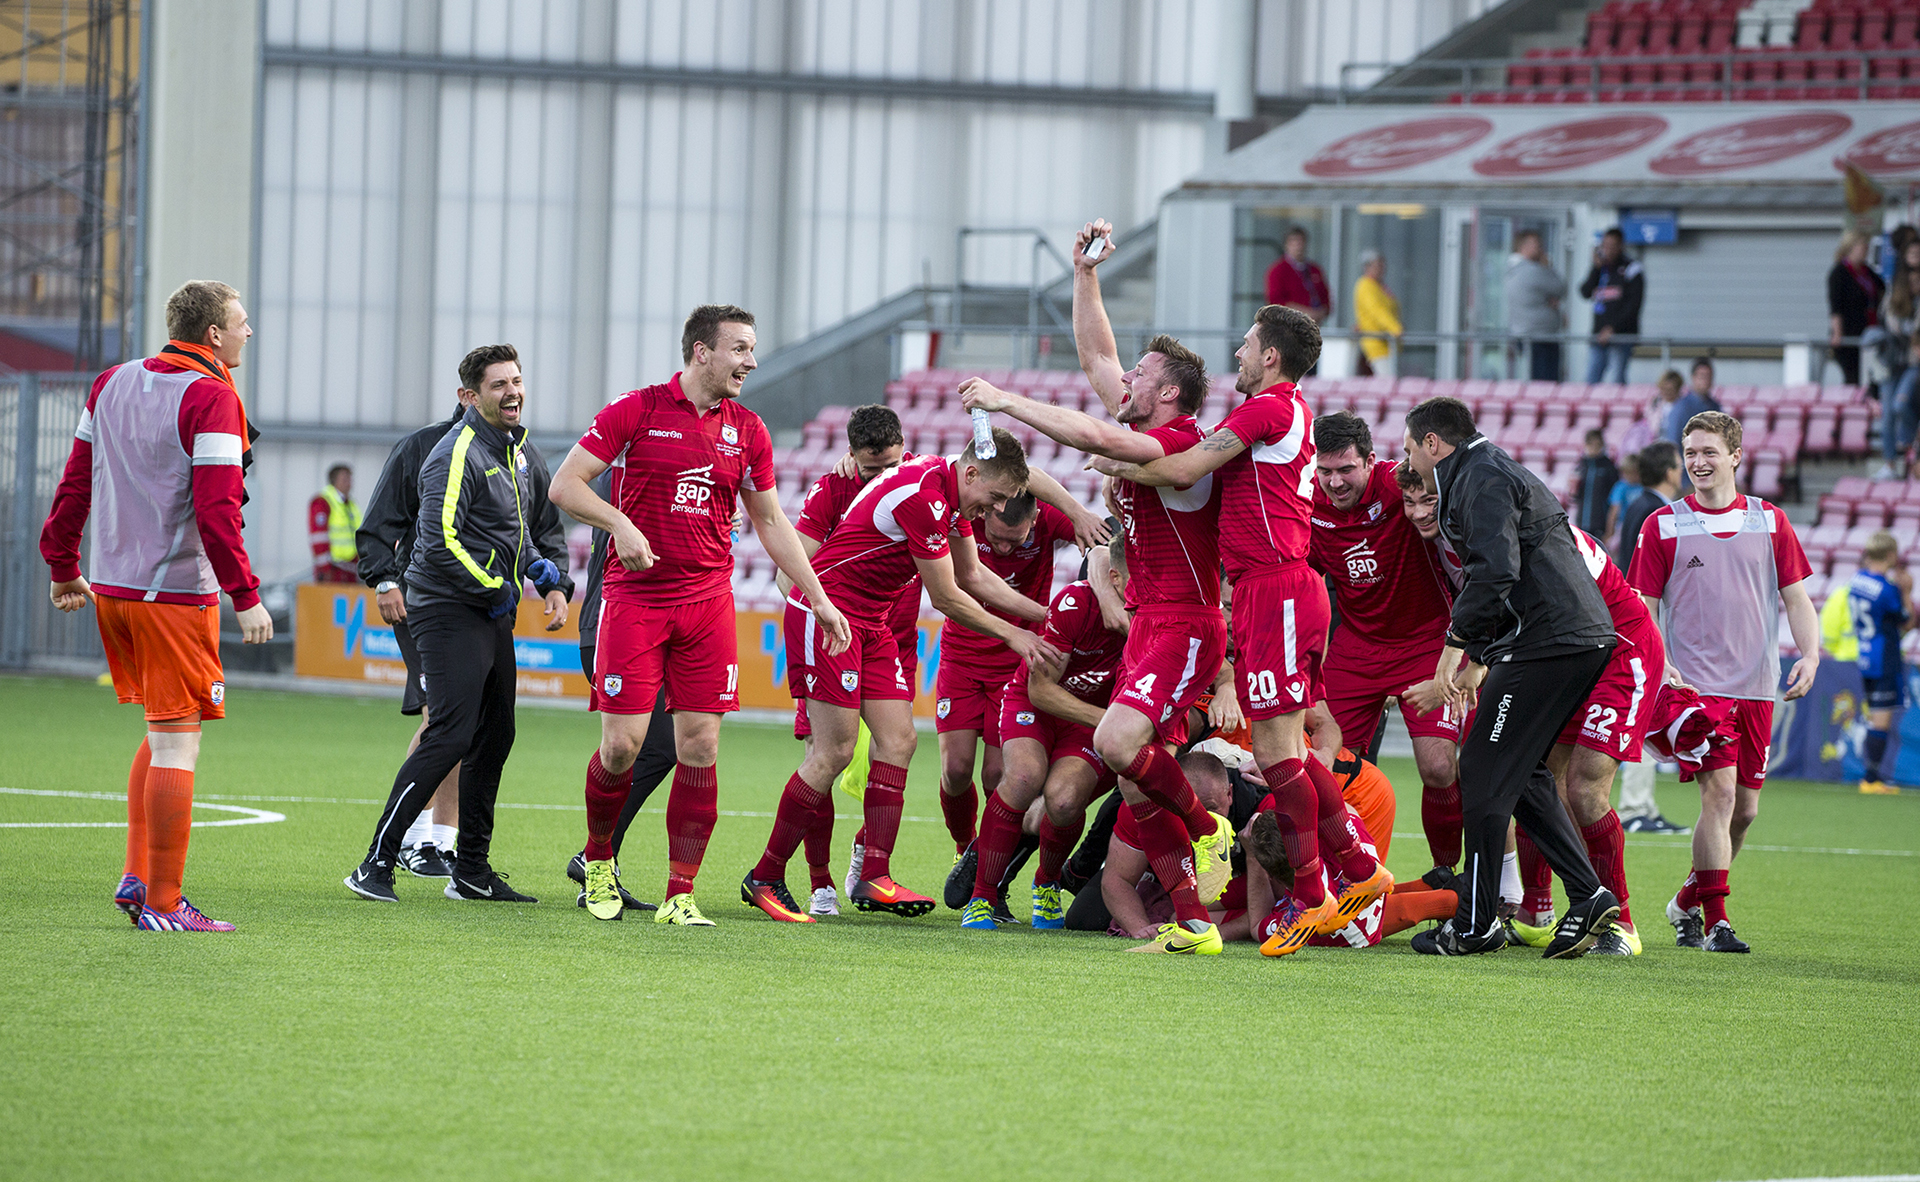 The Nomads players and staff celebrate their monumental victory | © NCM Media